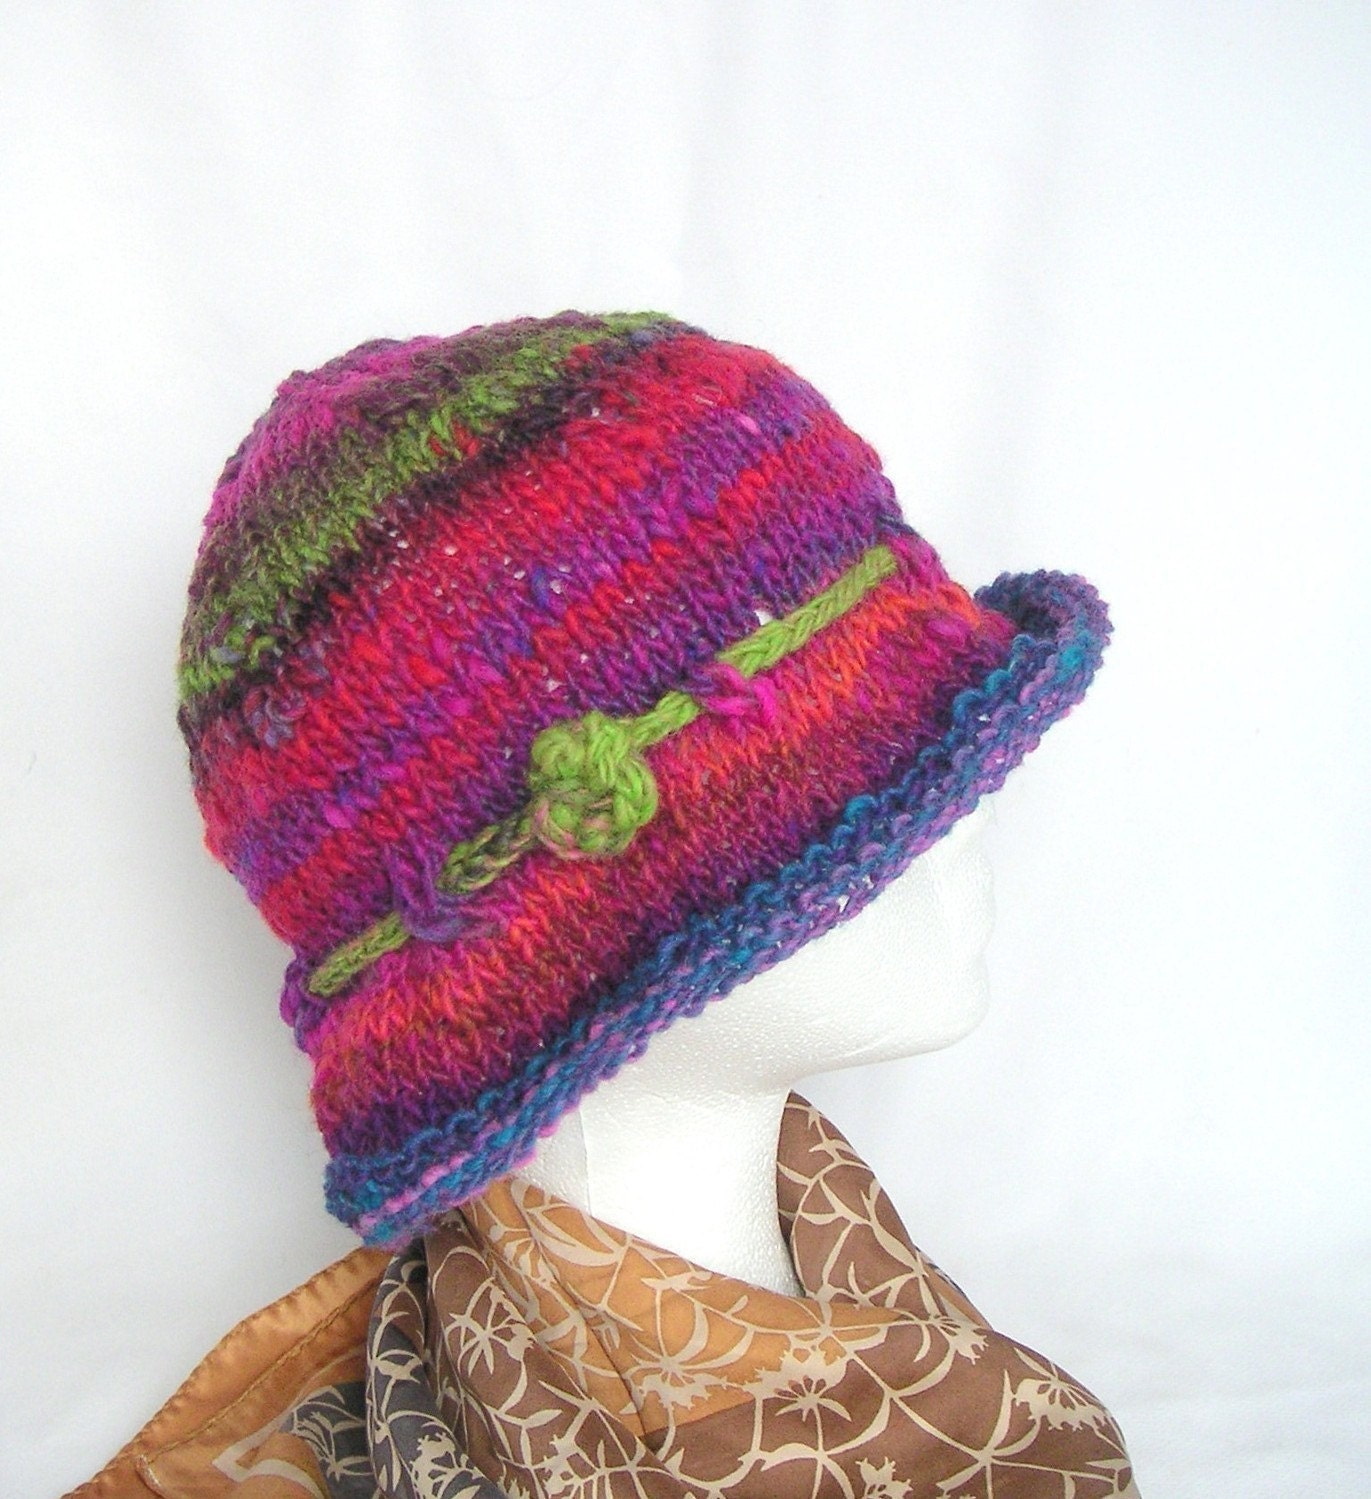 Easy Knitting Pattern For A Hat : EASY KNITTING PATTERNS FOR HATS